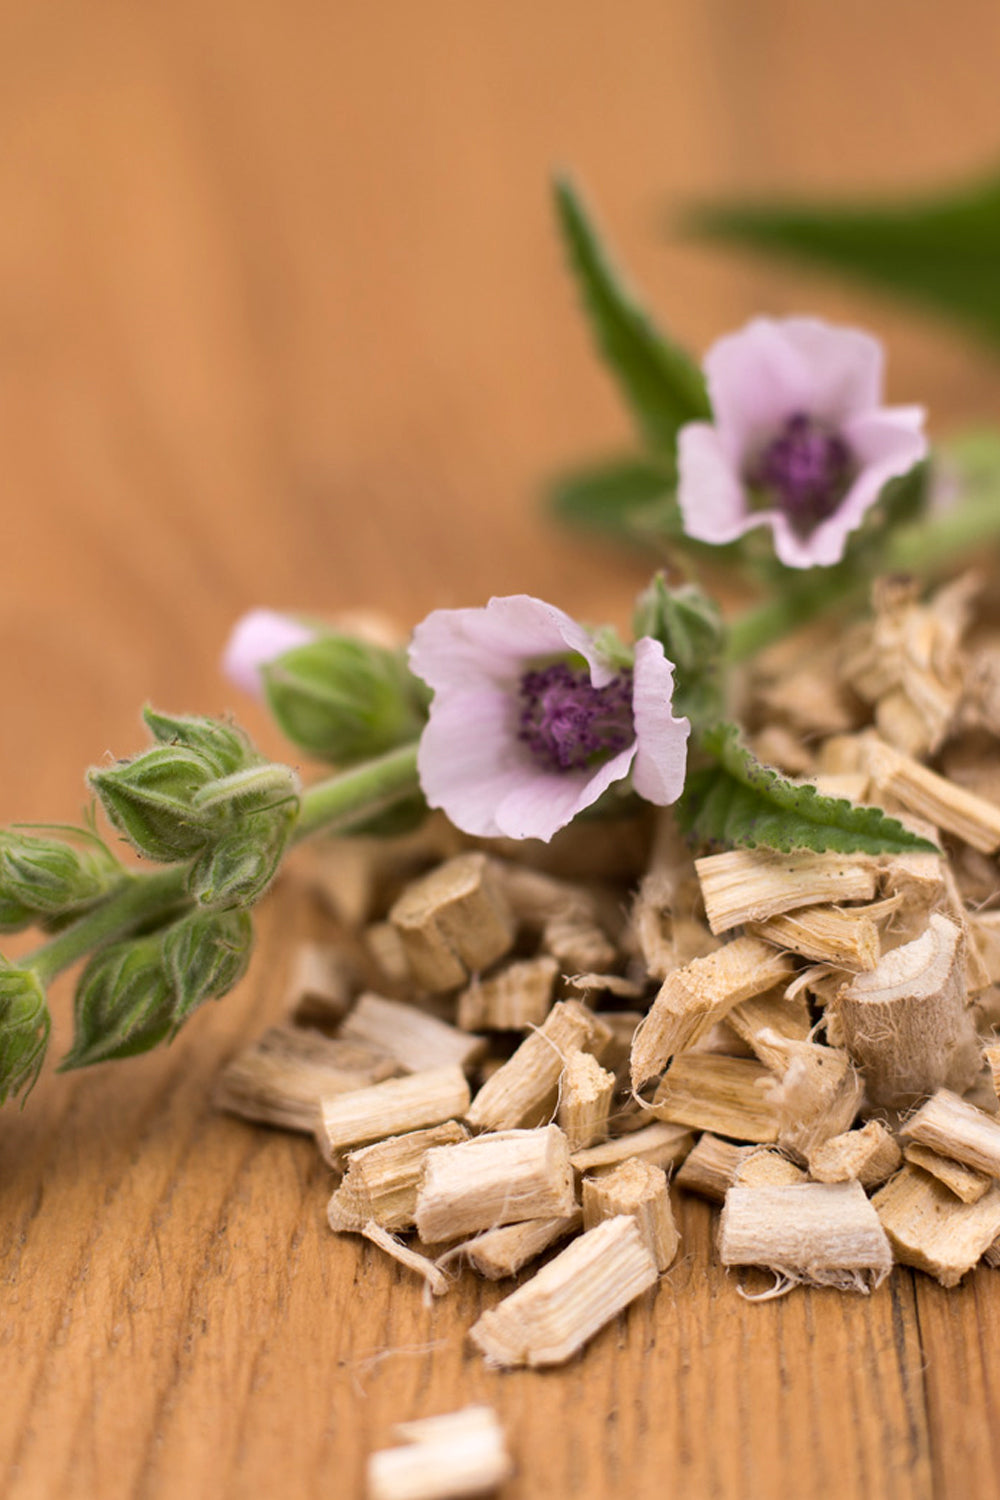 Marshmallow Root-Organic Fresh Dried. (Althaea Root) - Lizzy Lane Farm Apothecary